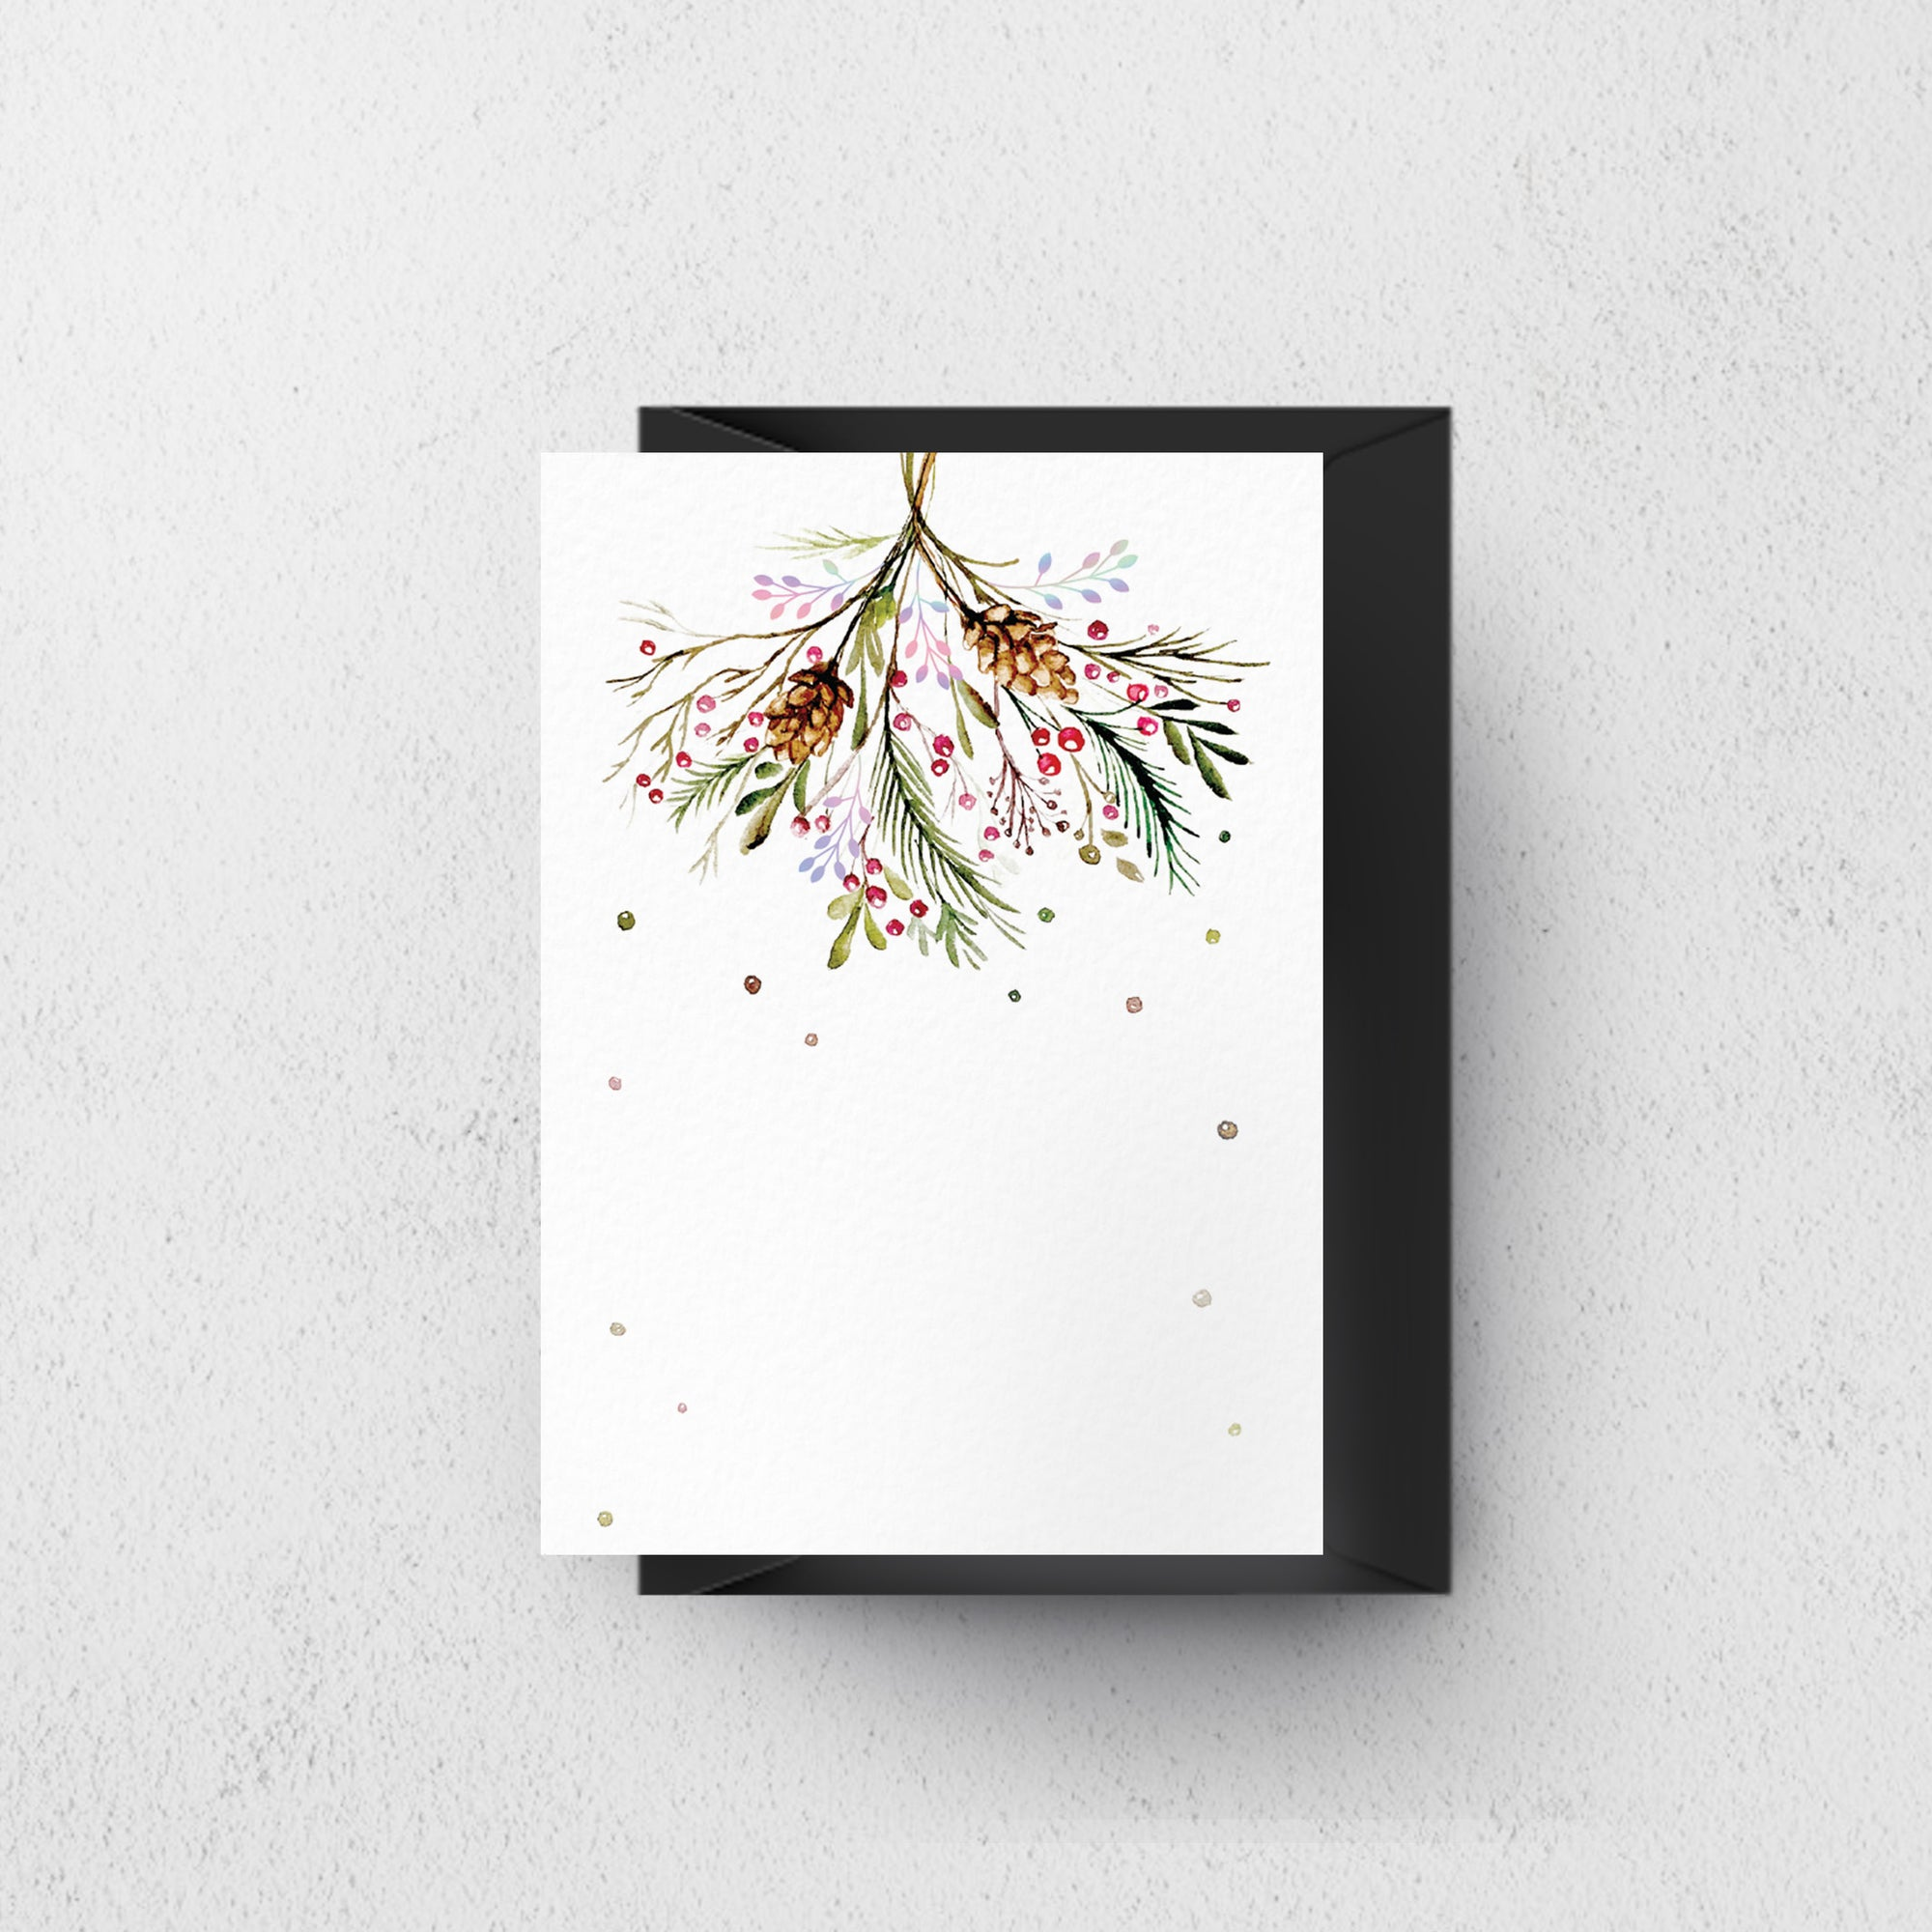 Image of Personalised Greeting Card 02